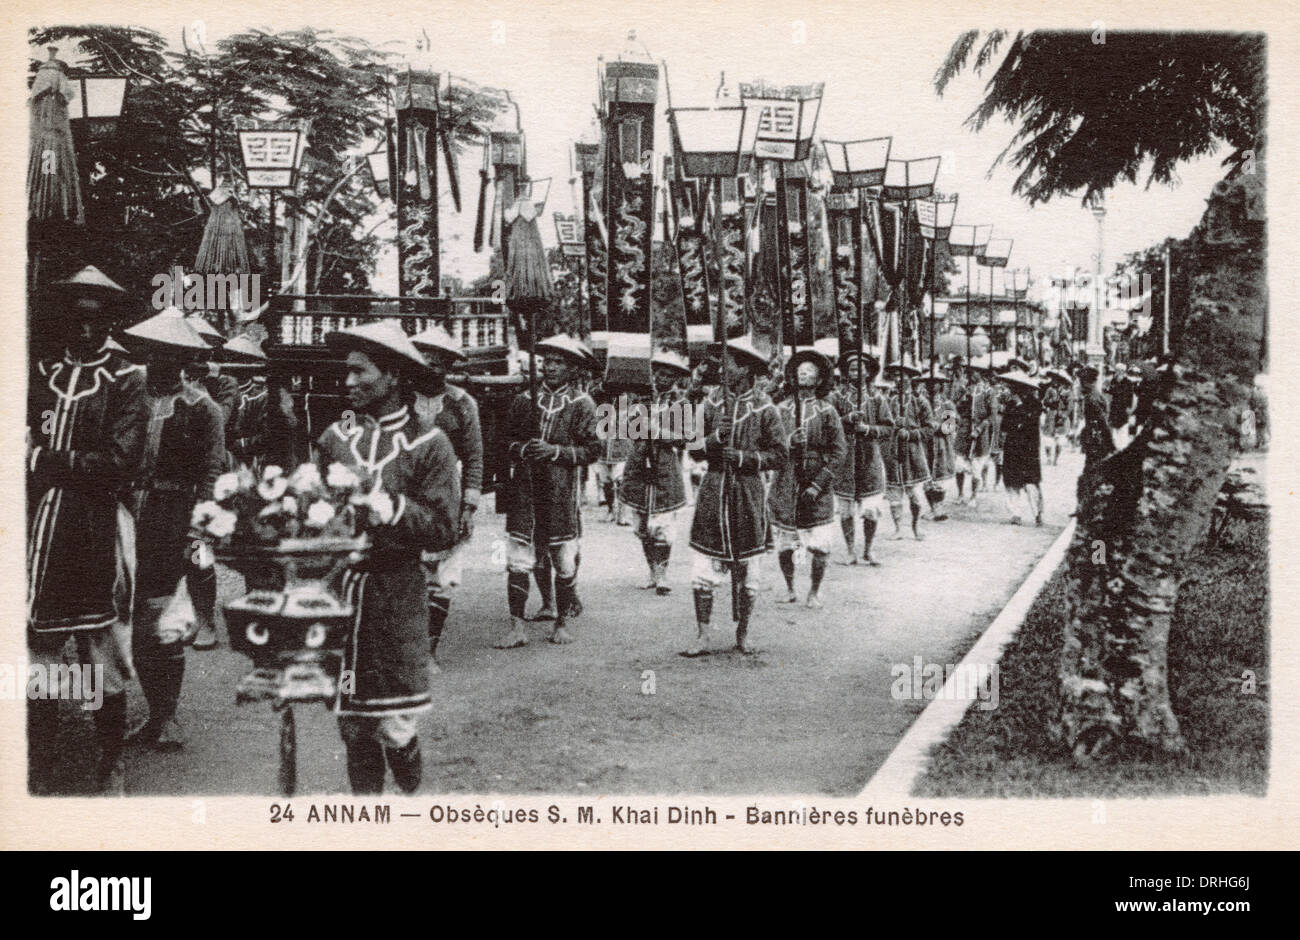 Funeral of Vietnamese Emperor Khai Dinh - procession - Stock Image